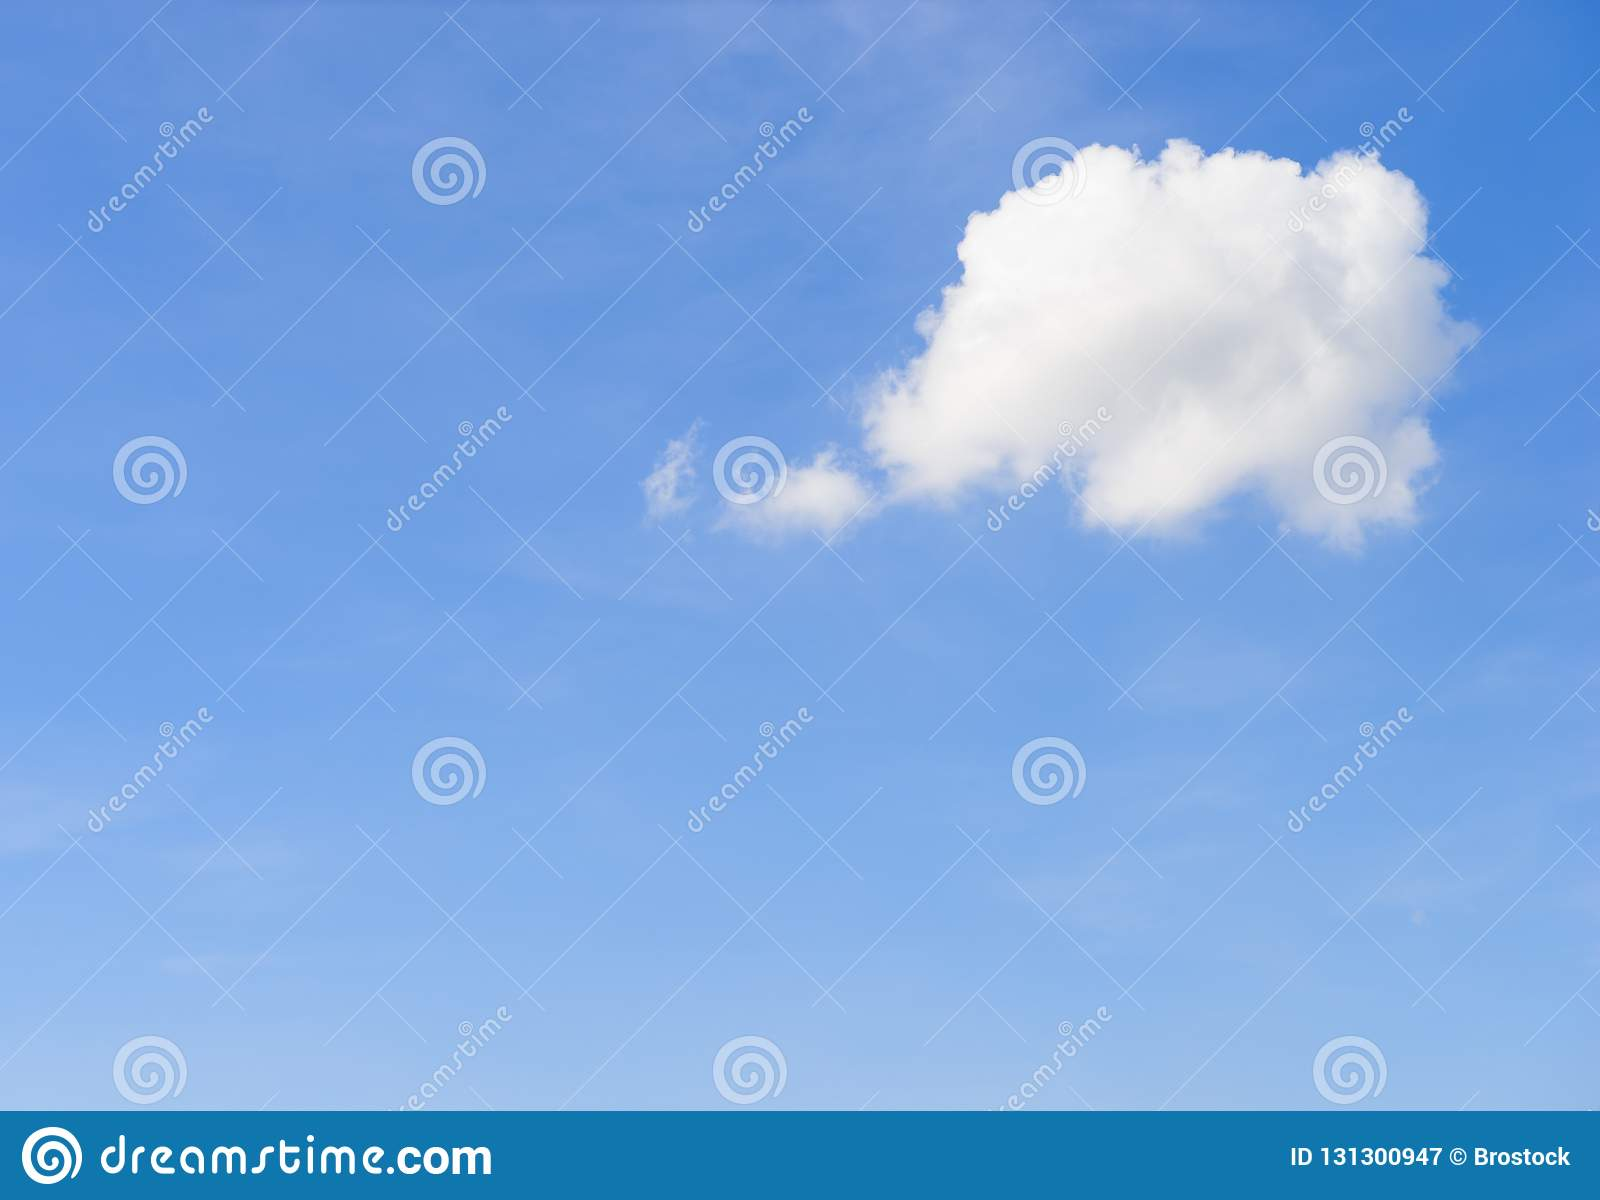 Cartoon Thinking Stock Images - Download 1,562 Royalty ...